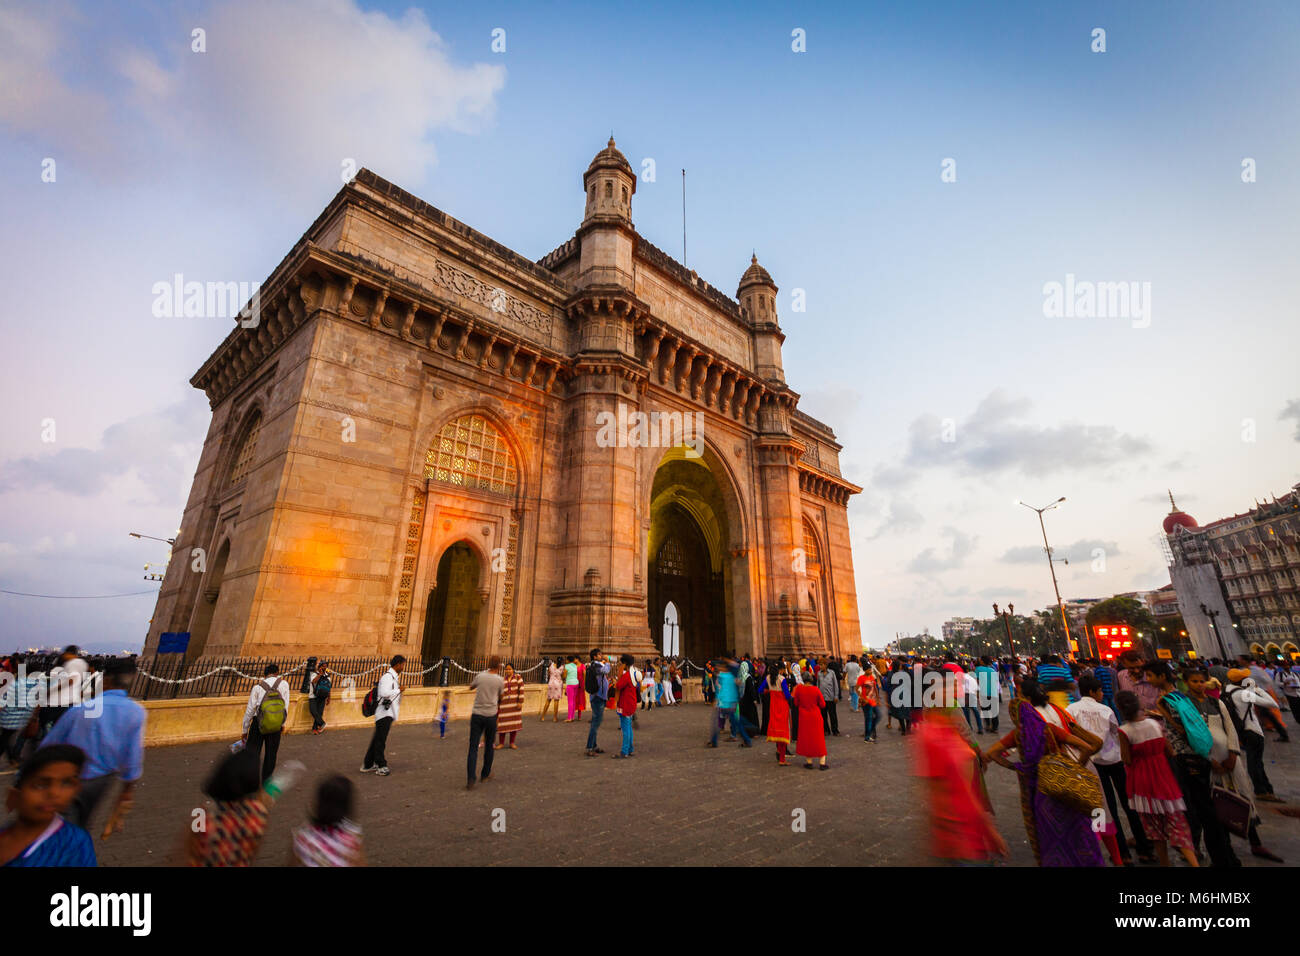 Gateway of India, Mumbai, India - Stock Image